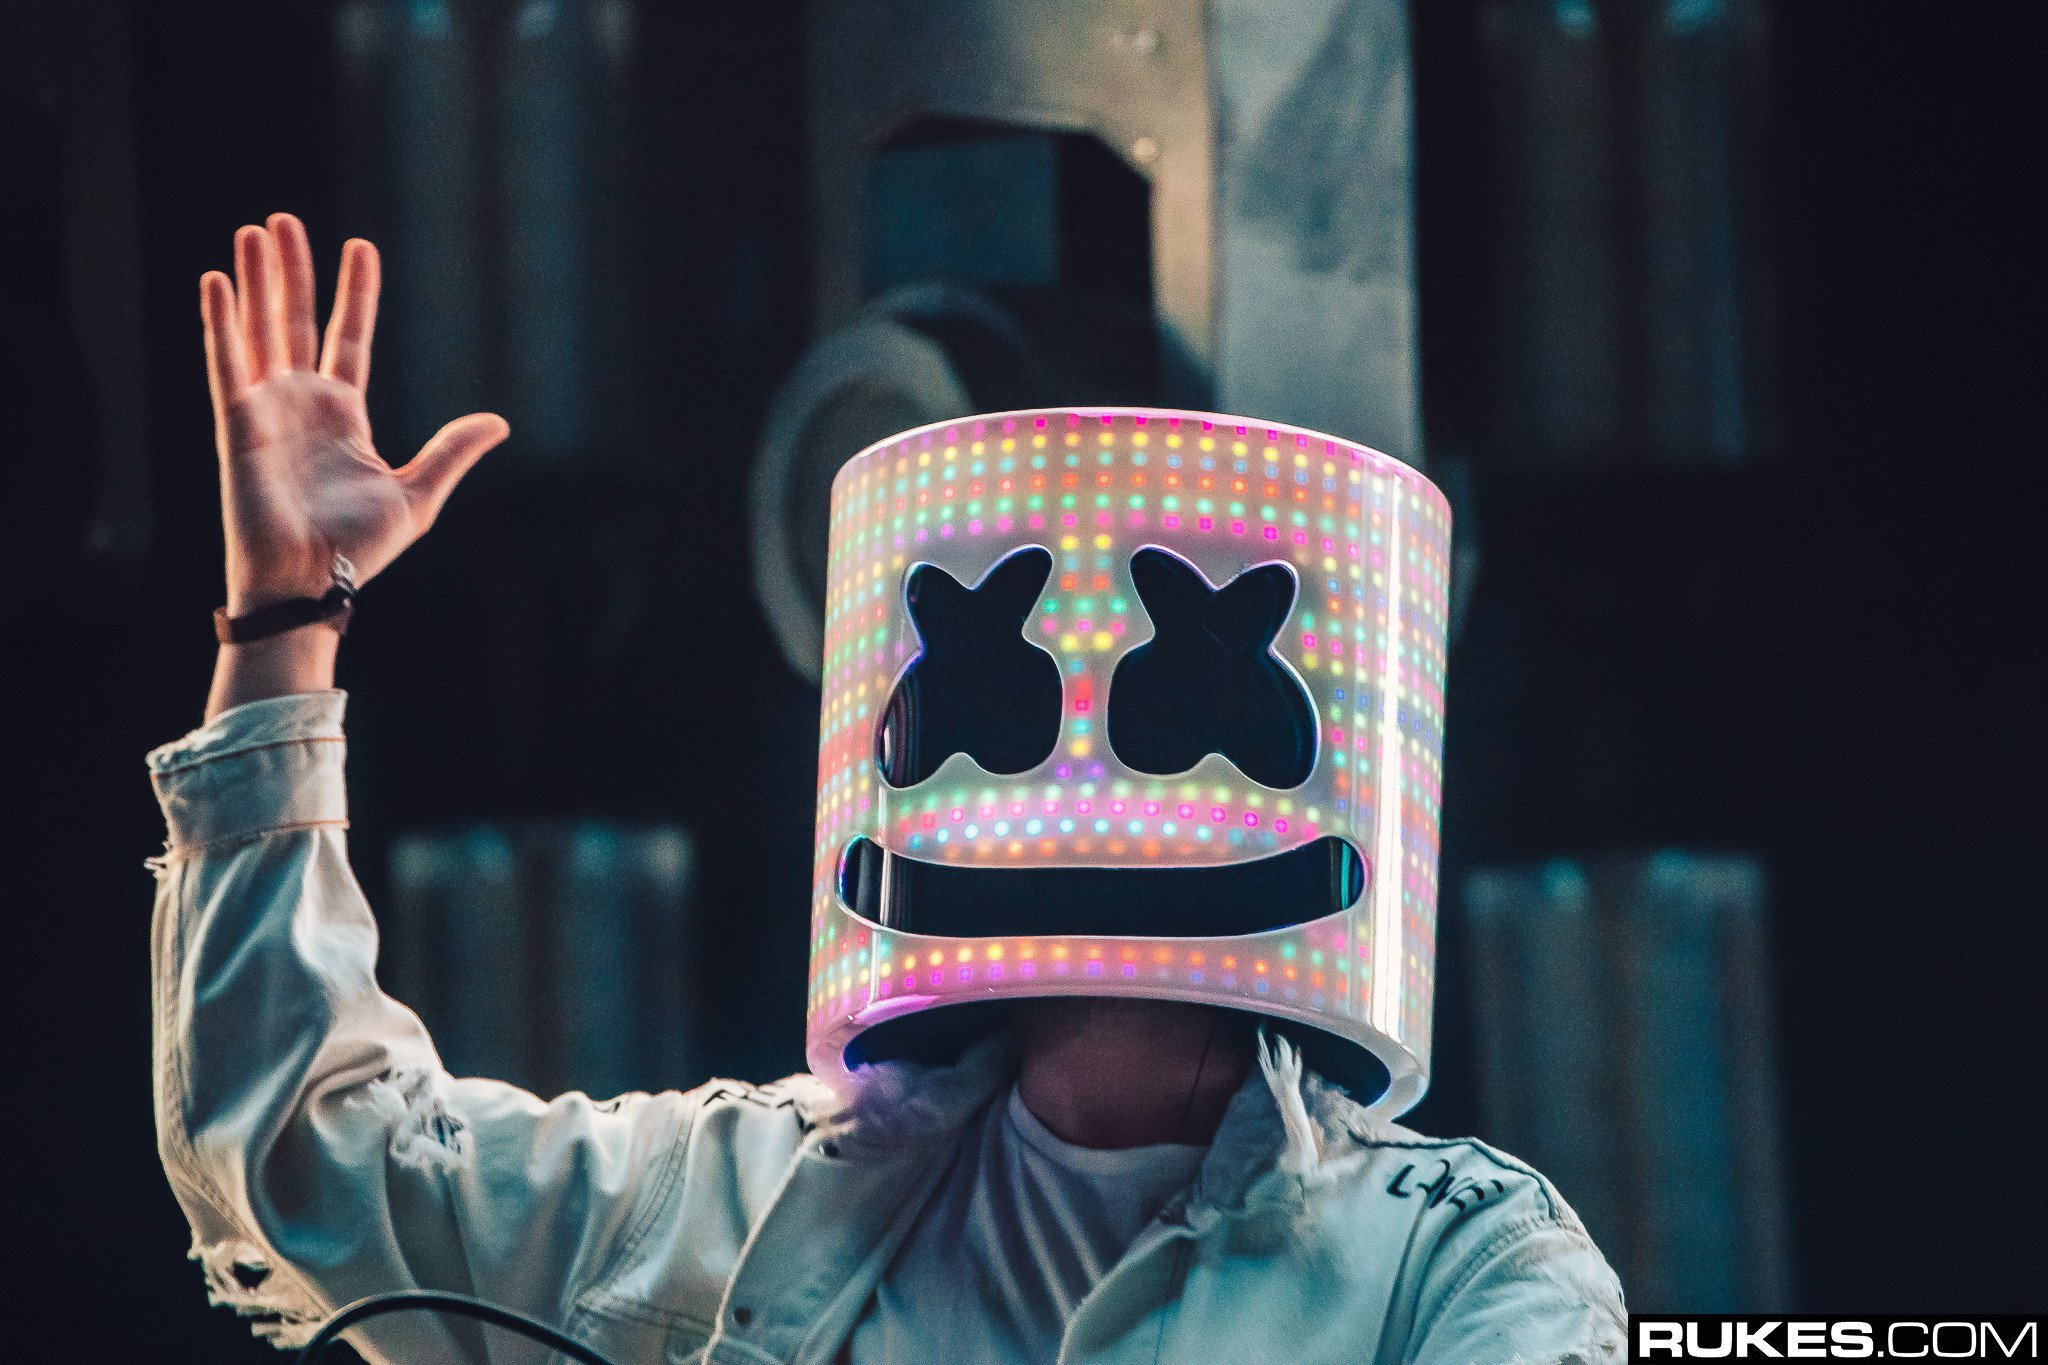 christian singles in comstock Christopher comstock (born may 19, 1992), known professionally as marshmello , is an  included on the album was the single keep it mello, featuring rapper  omar linx he is managed by moe shalizi of red light management, who also.